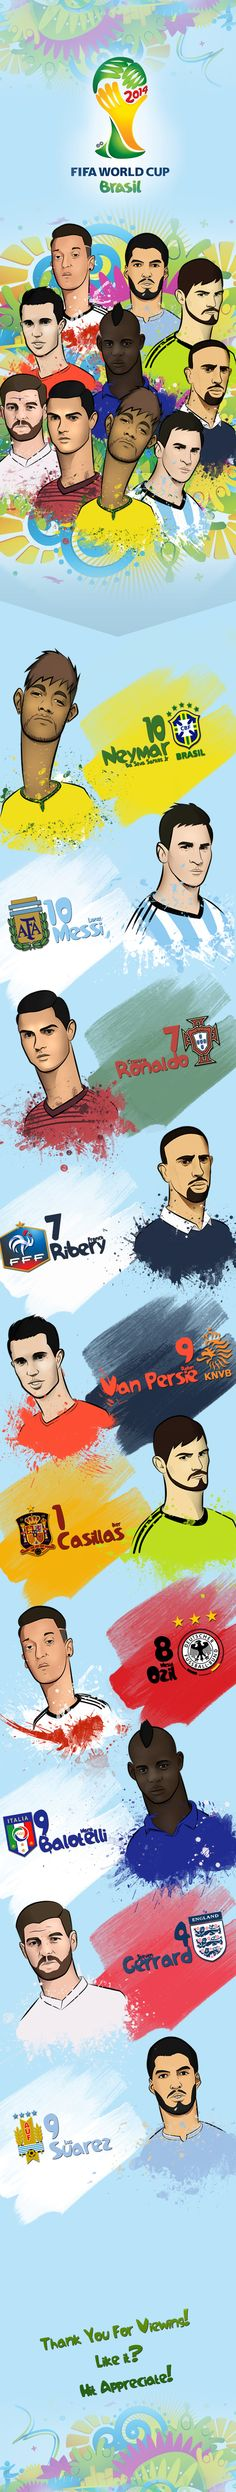 FIFA World Cup 2014 - Players by Armand Mamonong, via Behance